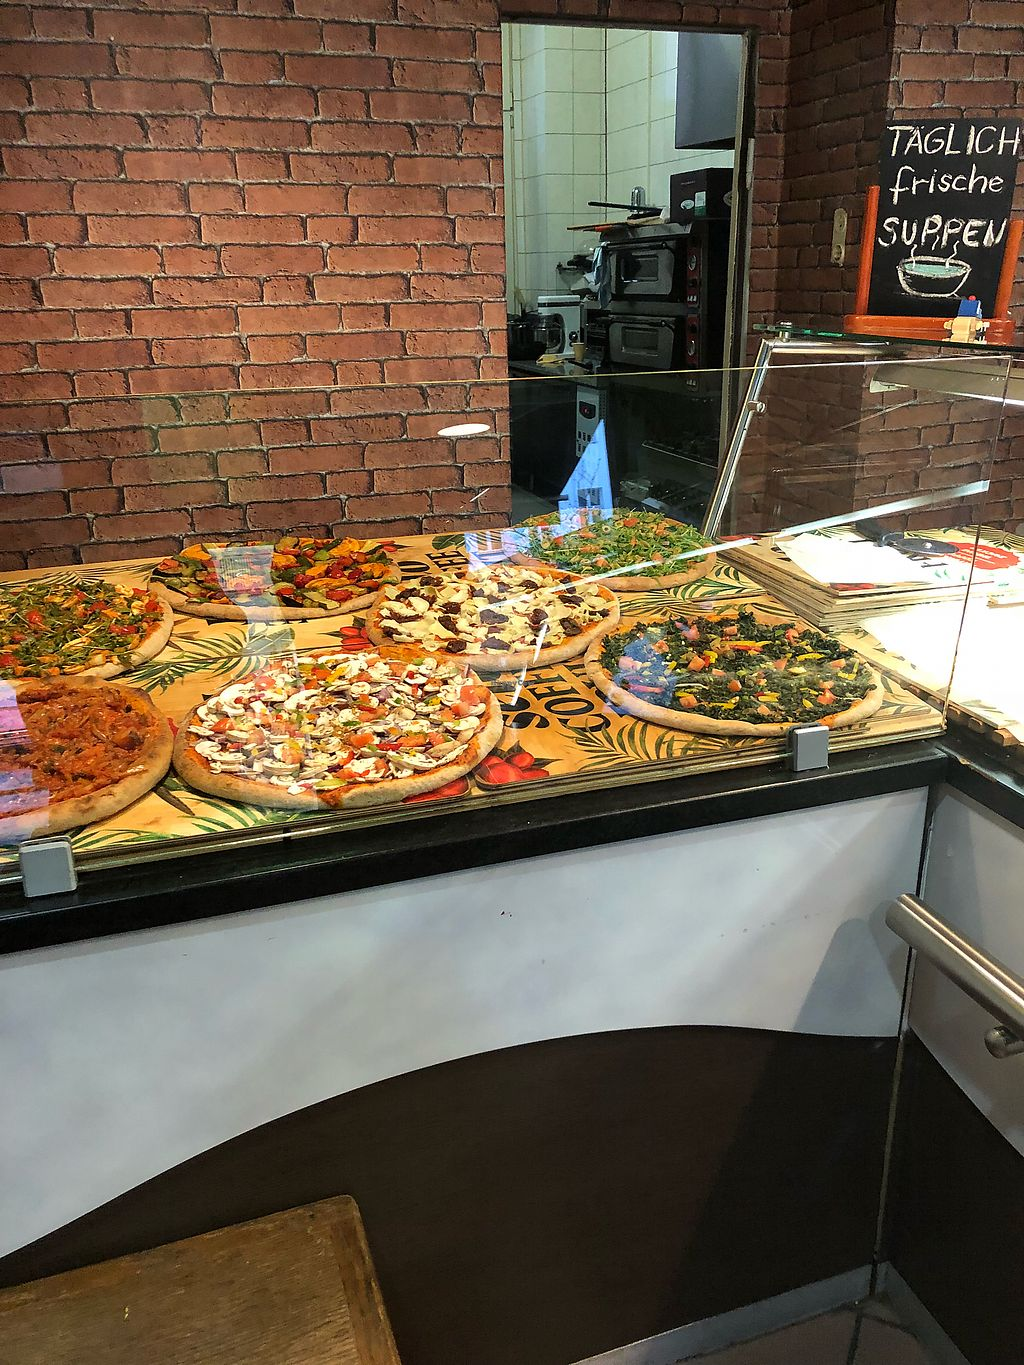 "Photo of Kiez Vegan - Kortestrasse  by <a href=""/members/profile/Elliskatee"">Elliskatee</a> <br/>Pizza <br/> January 26, 2018  - <a href='/contact/abuse/image/48783/351073'>Report</a>"